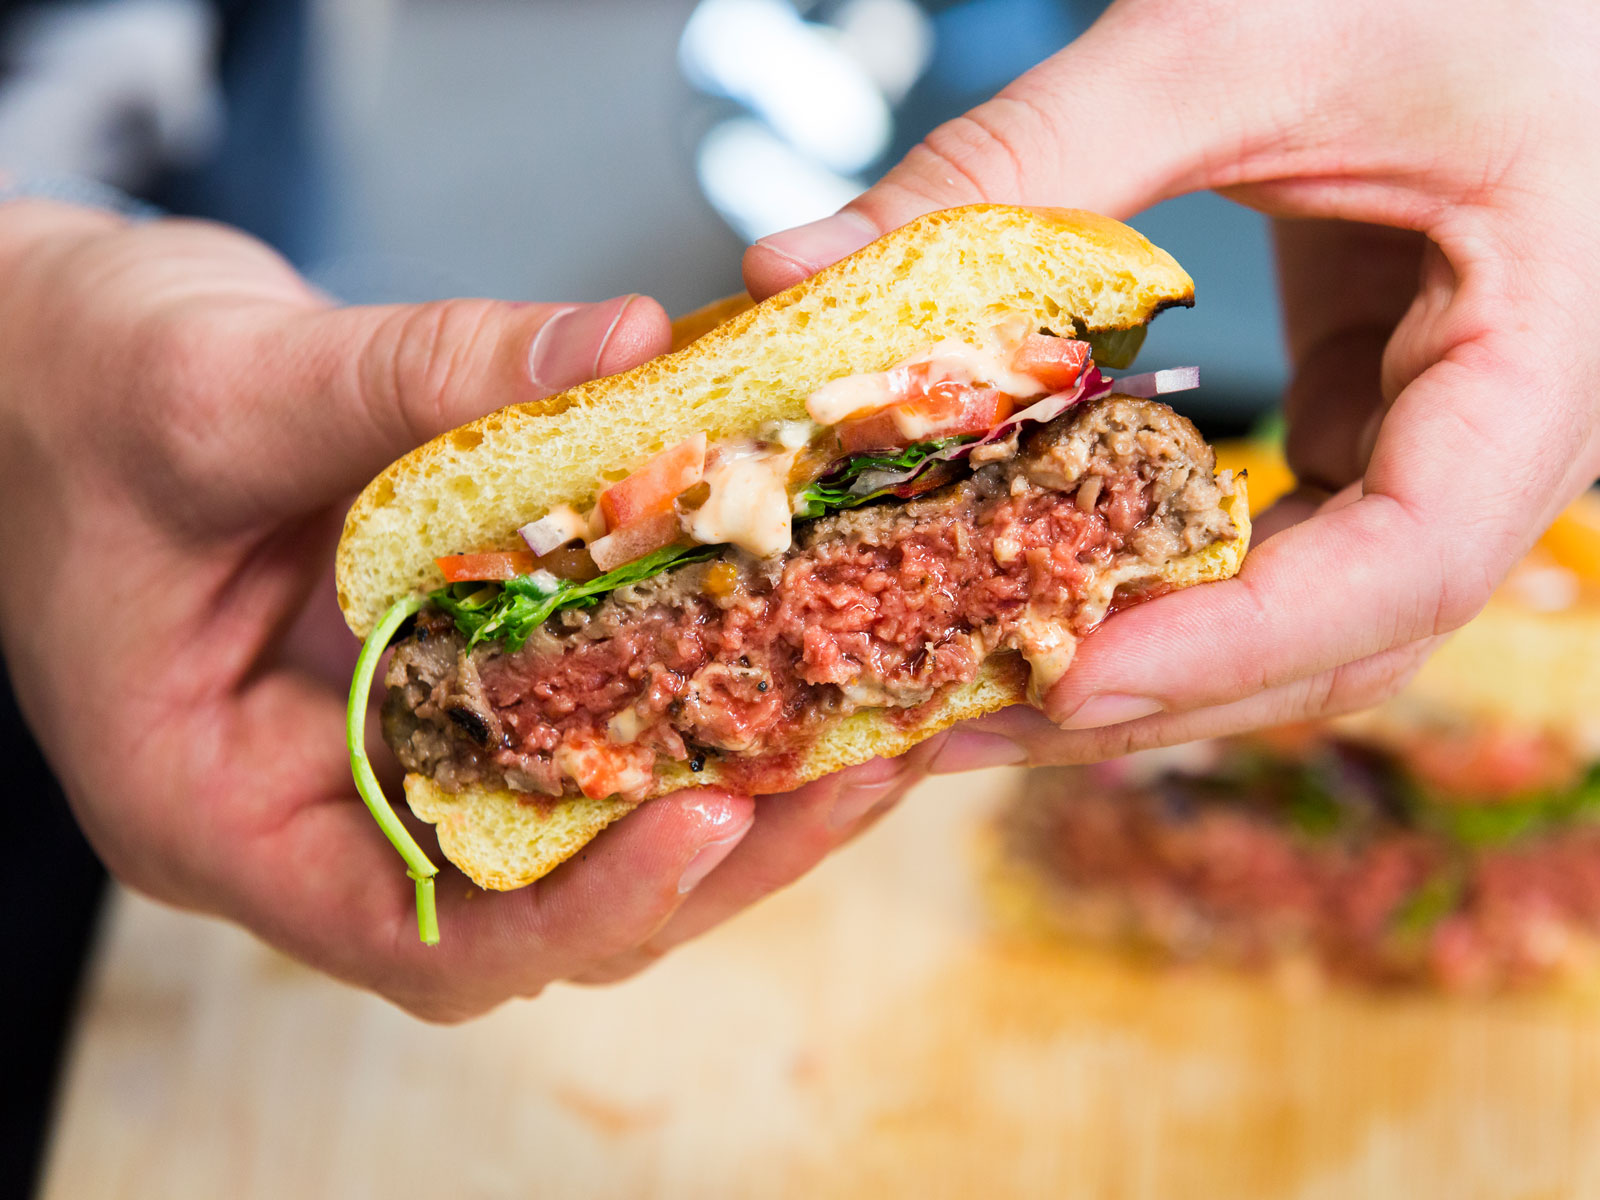 Grill-able, Gluten-Free Impossible Burger 2.0 Hits Restaurants This Month